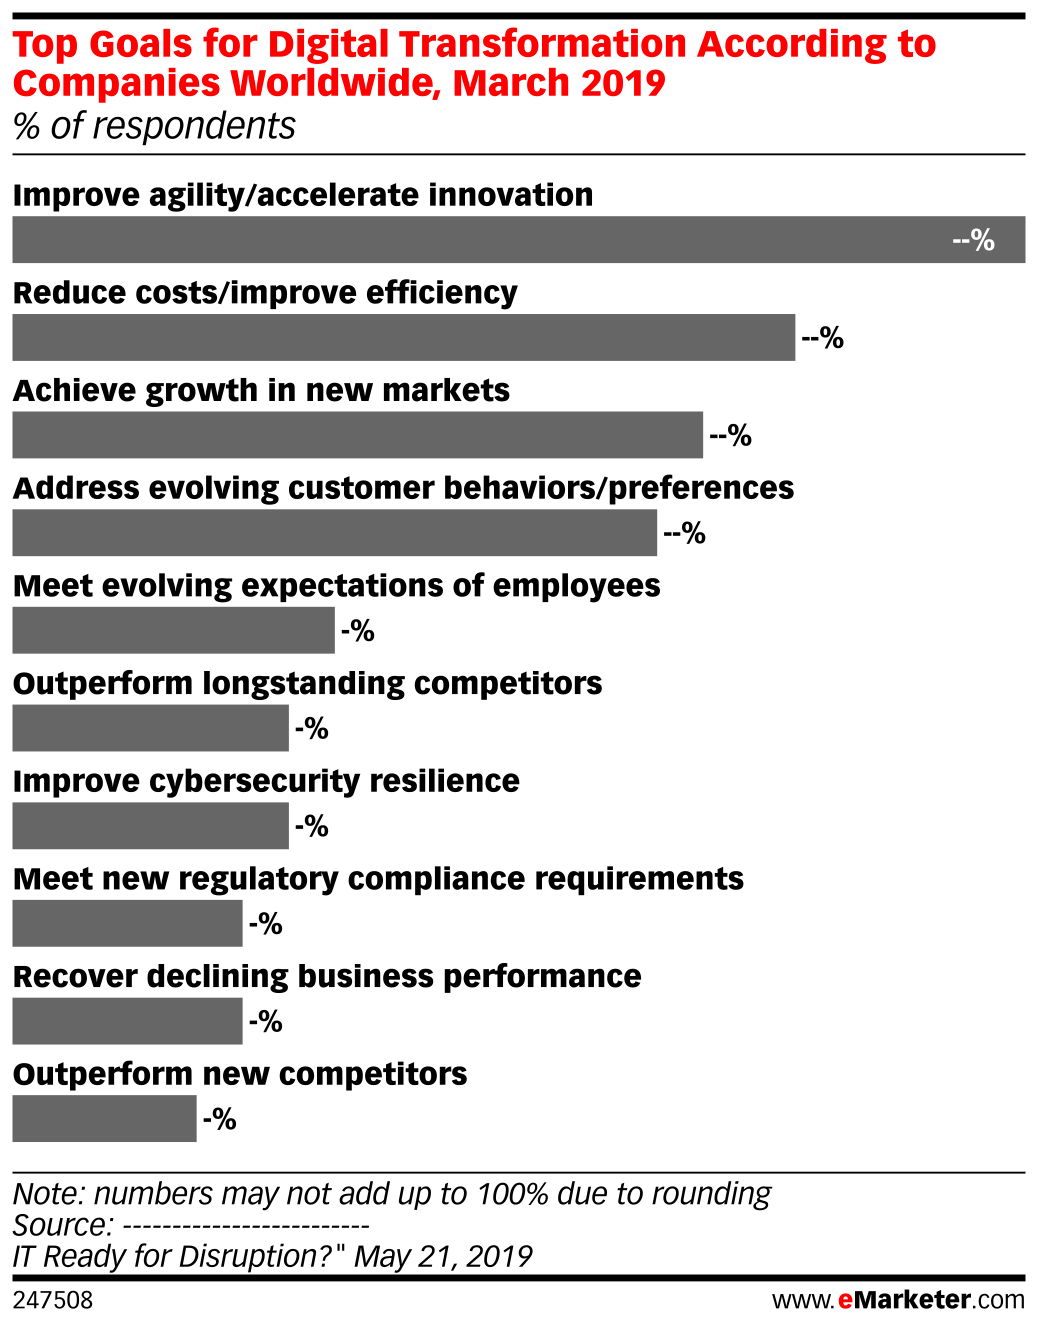 Top Goals for Digital Transformation According to Companies Worldwide, March 2019 (% of respondents)